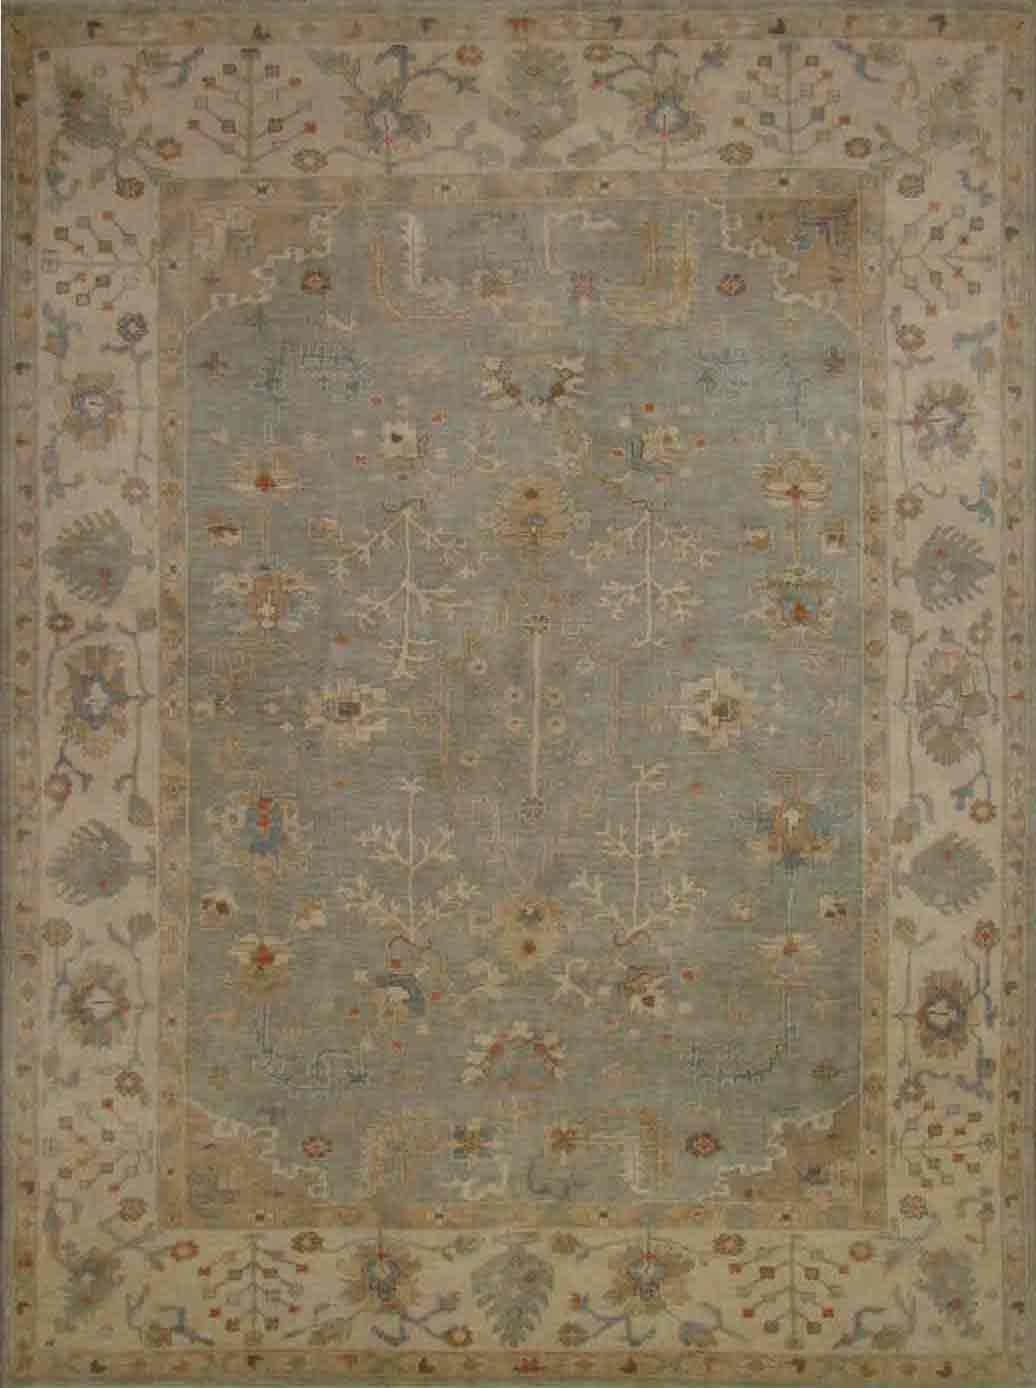 Hand Knotted Oushak Rugs Amp Turkish Rugs F T Knot 20350